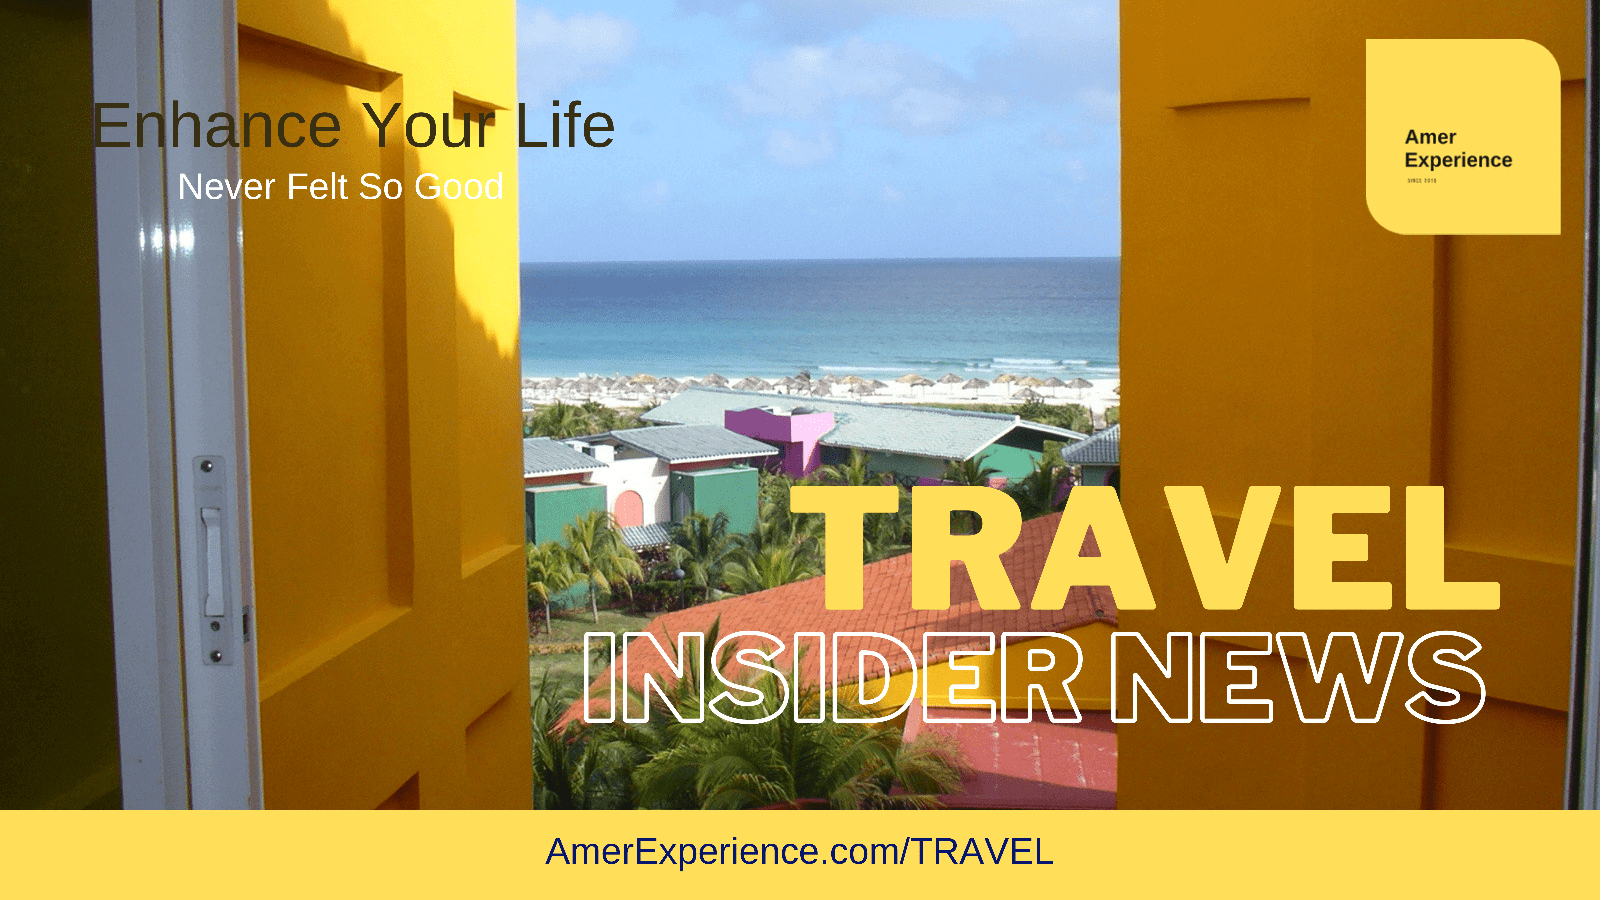 Travel Insider News Feed And Things To Do AmerExperience.com/T